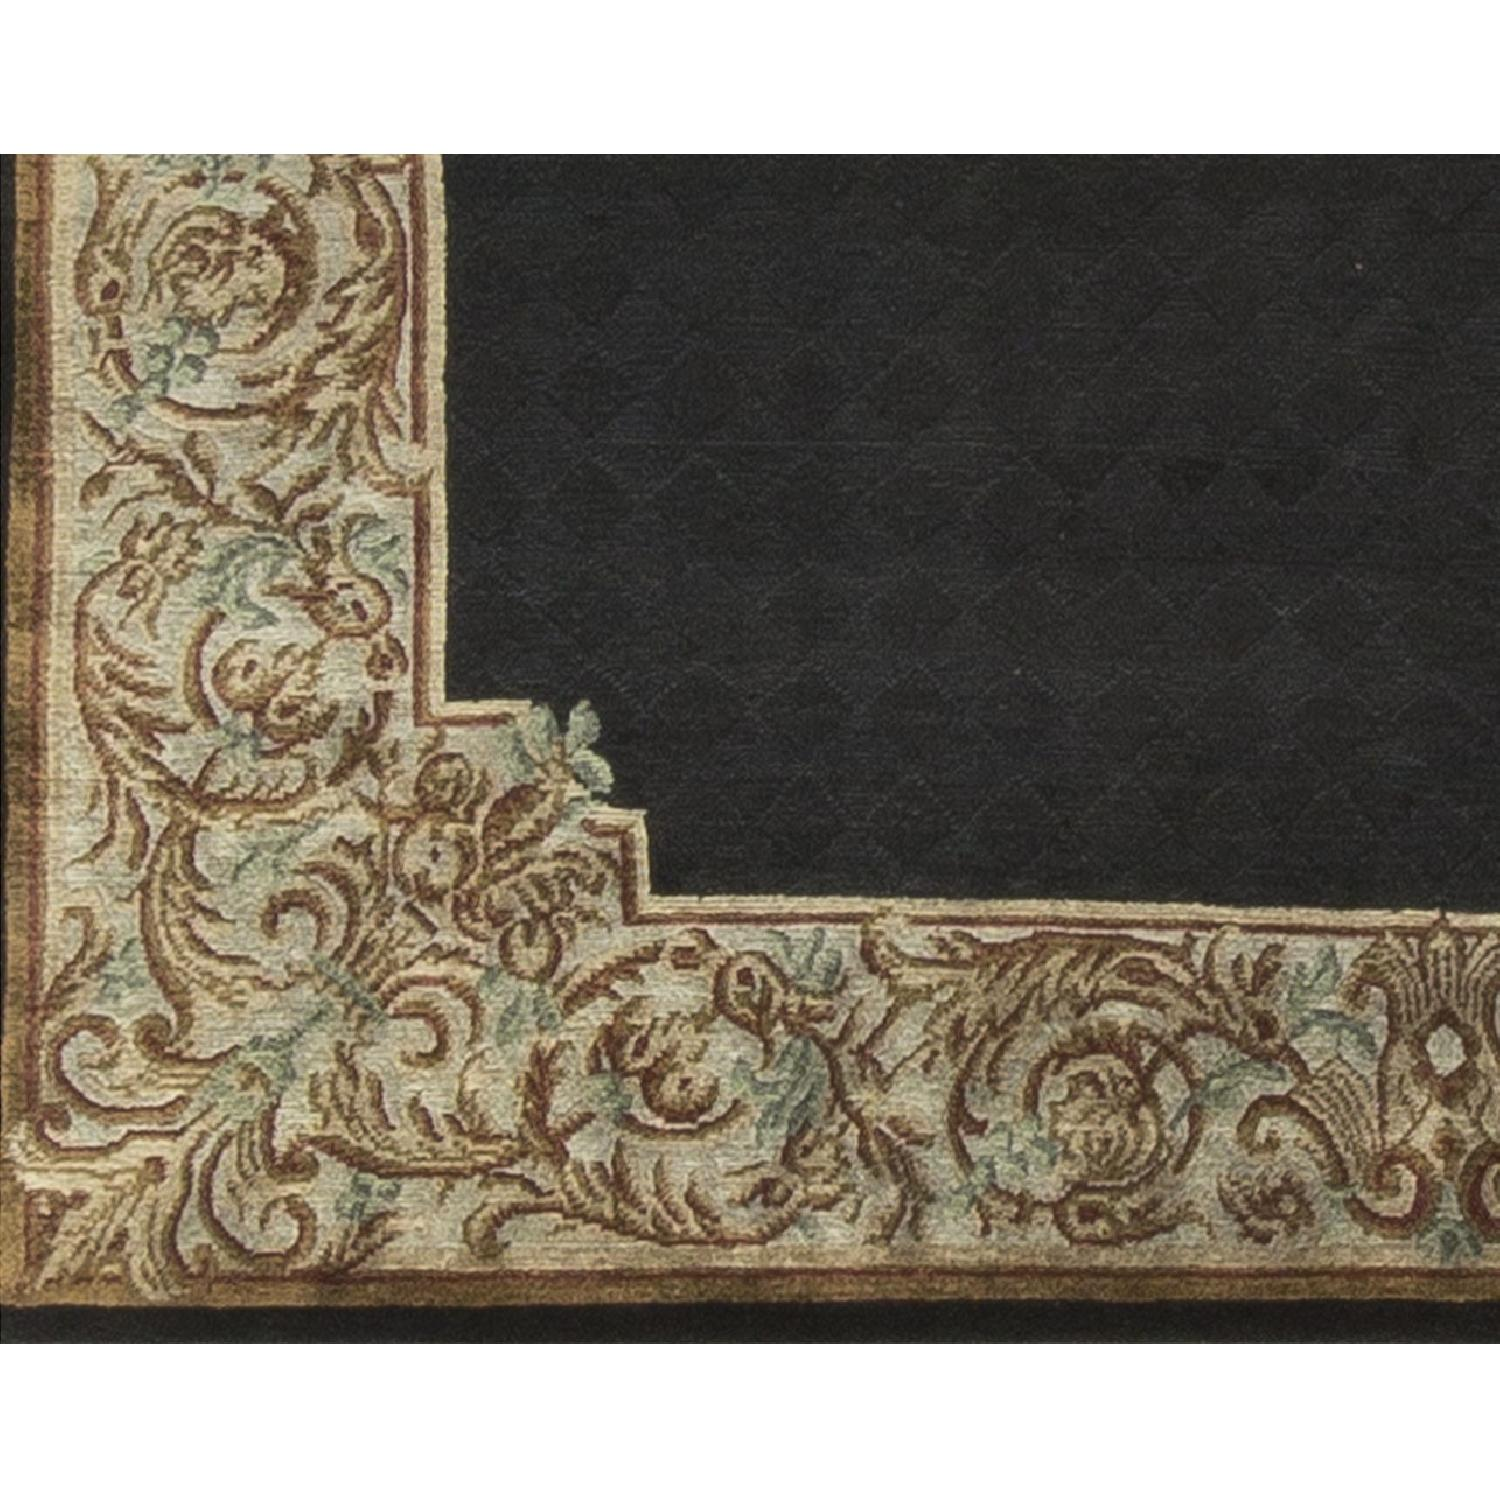 Modern Contemporary Hand Knotted Wool Rug in Black/Gold - image-2